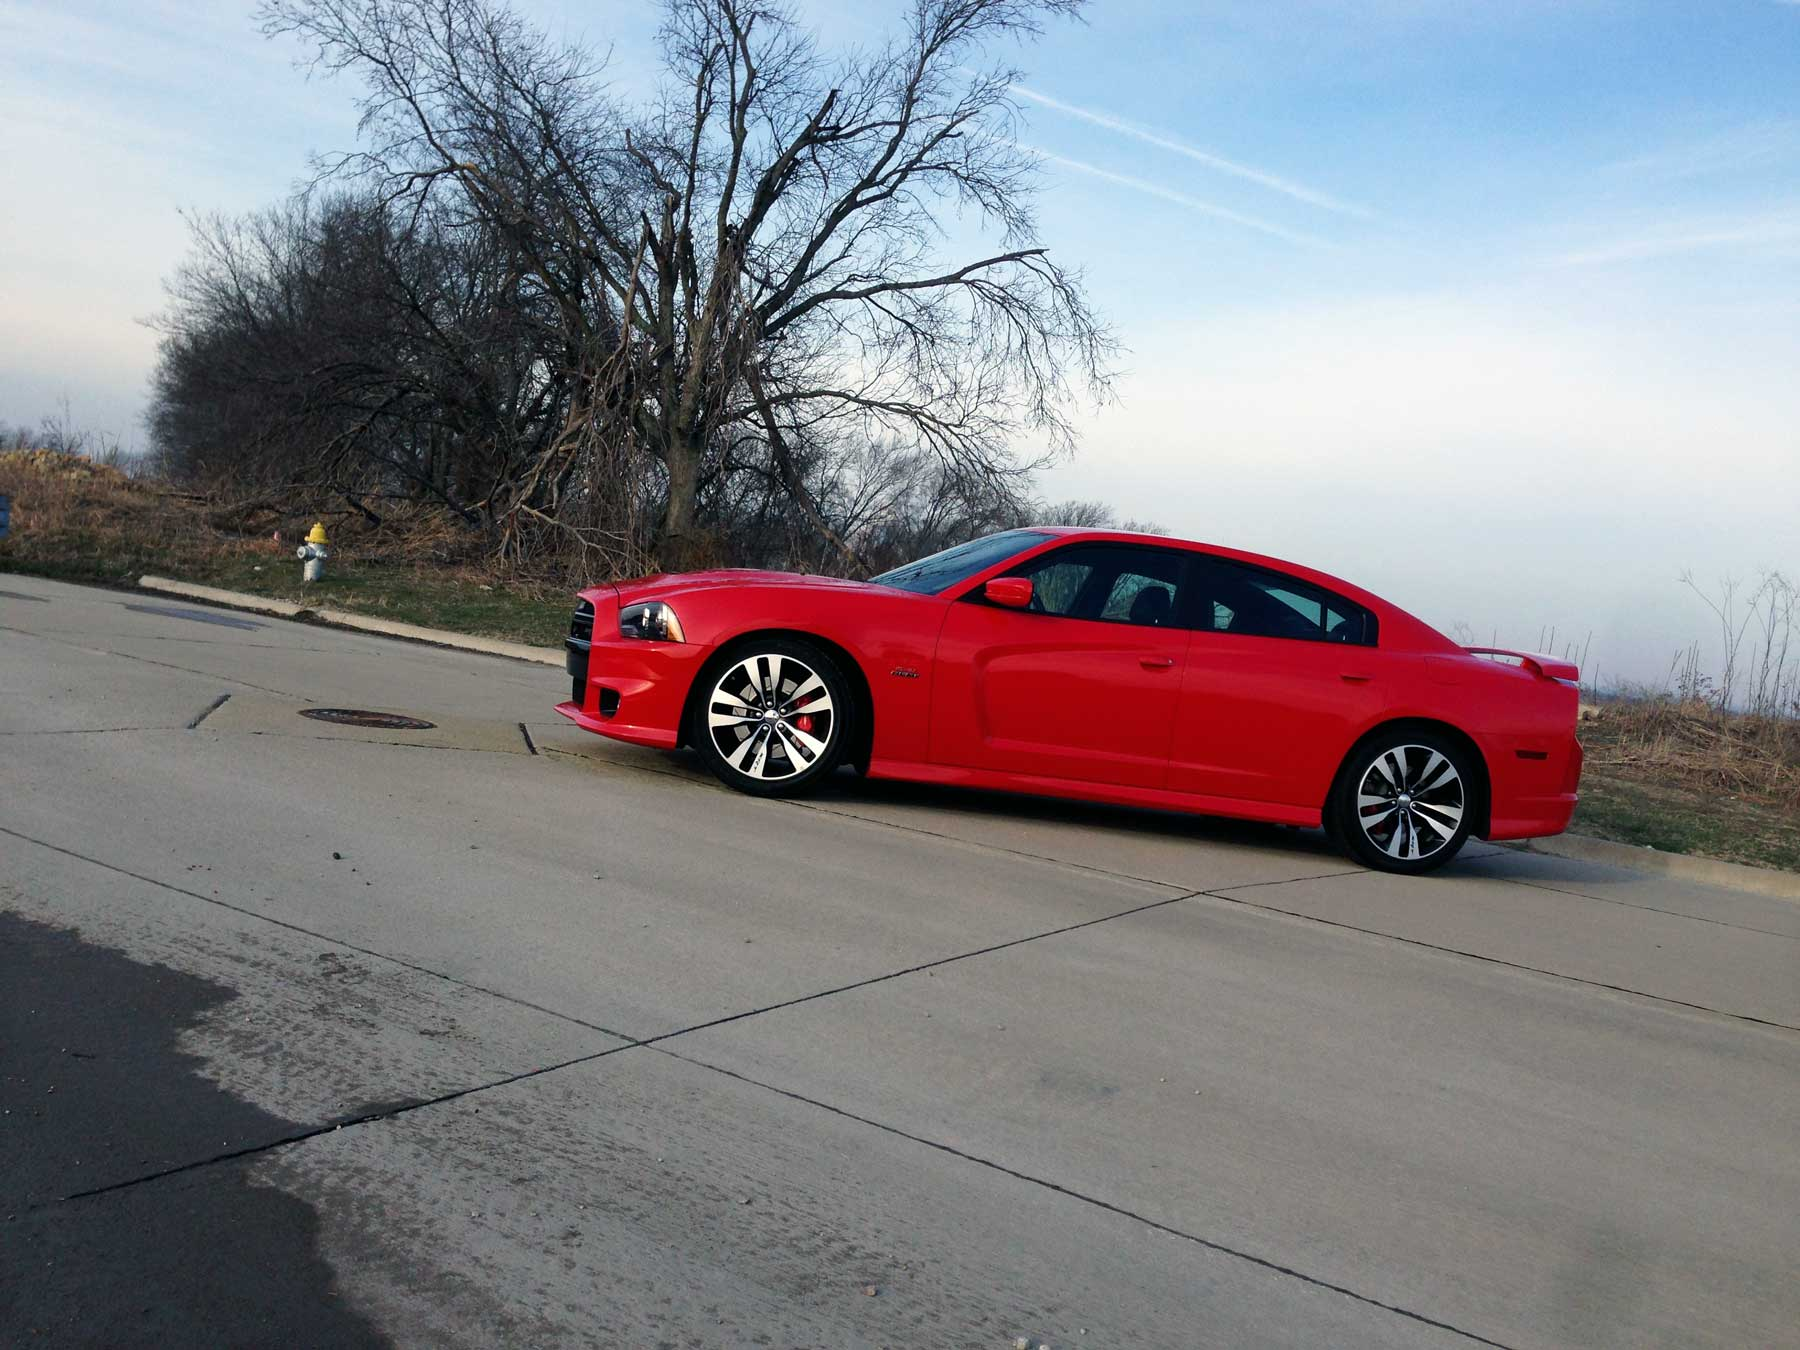 2014 srt charger by txgarage - Dodge Charger 2014 Red